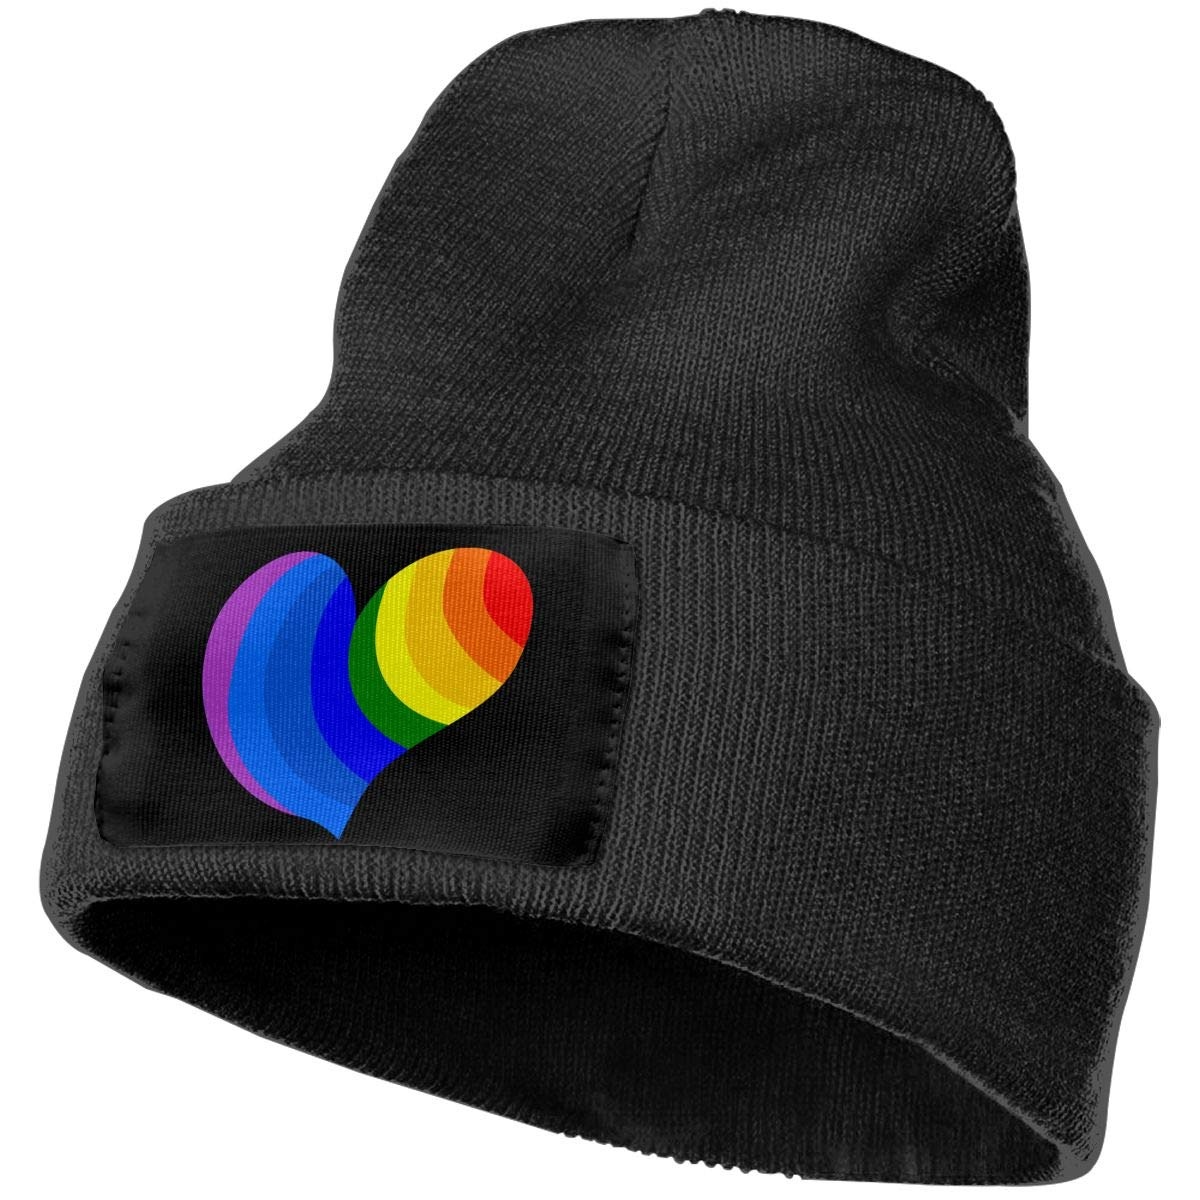 COLLJL-8 Men//Women Gay Pride Outdoor Stretch Knit Beanies Hat Soft Winter Knit Caps